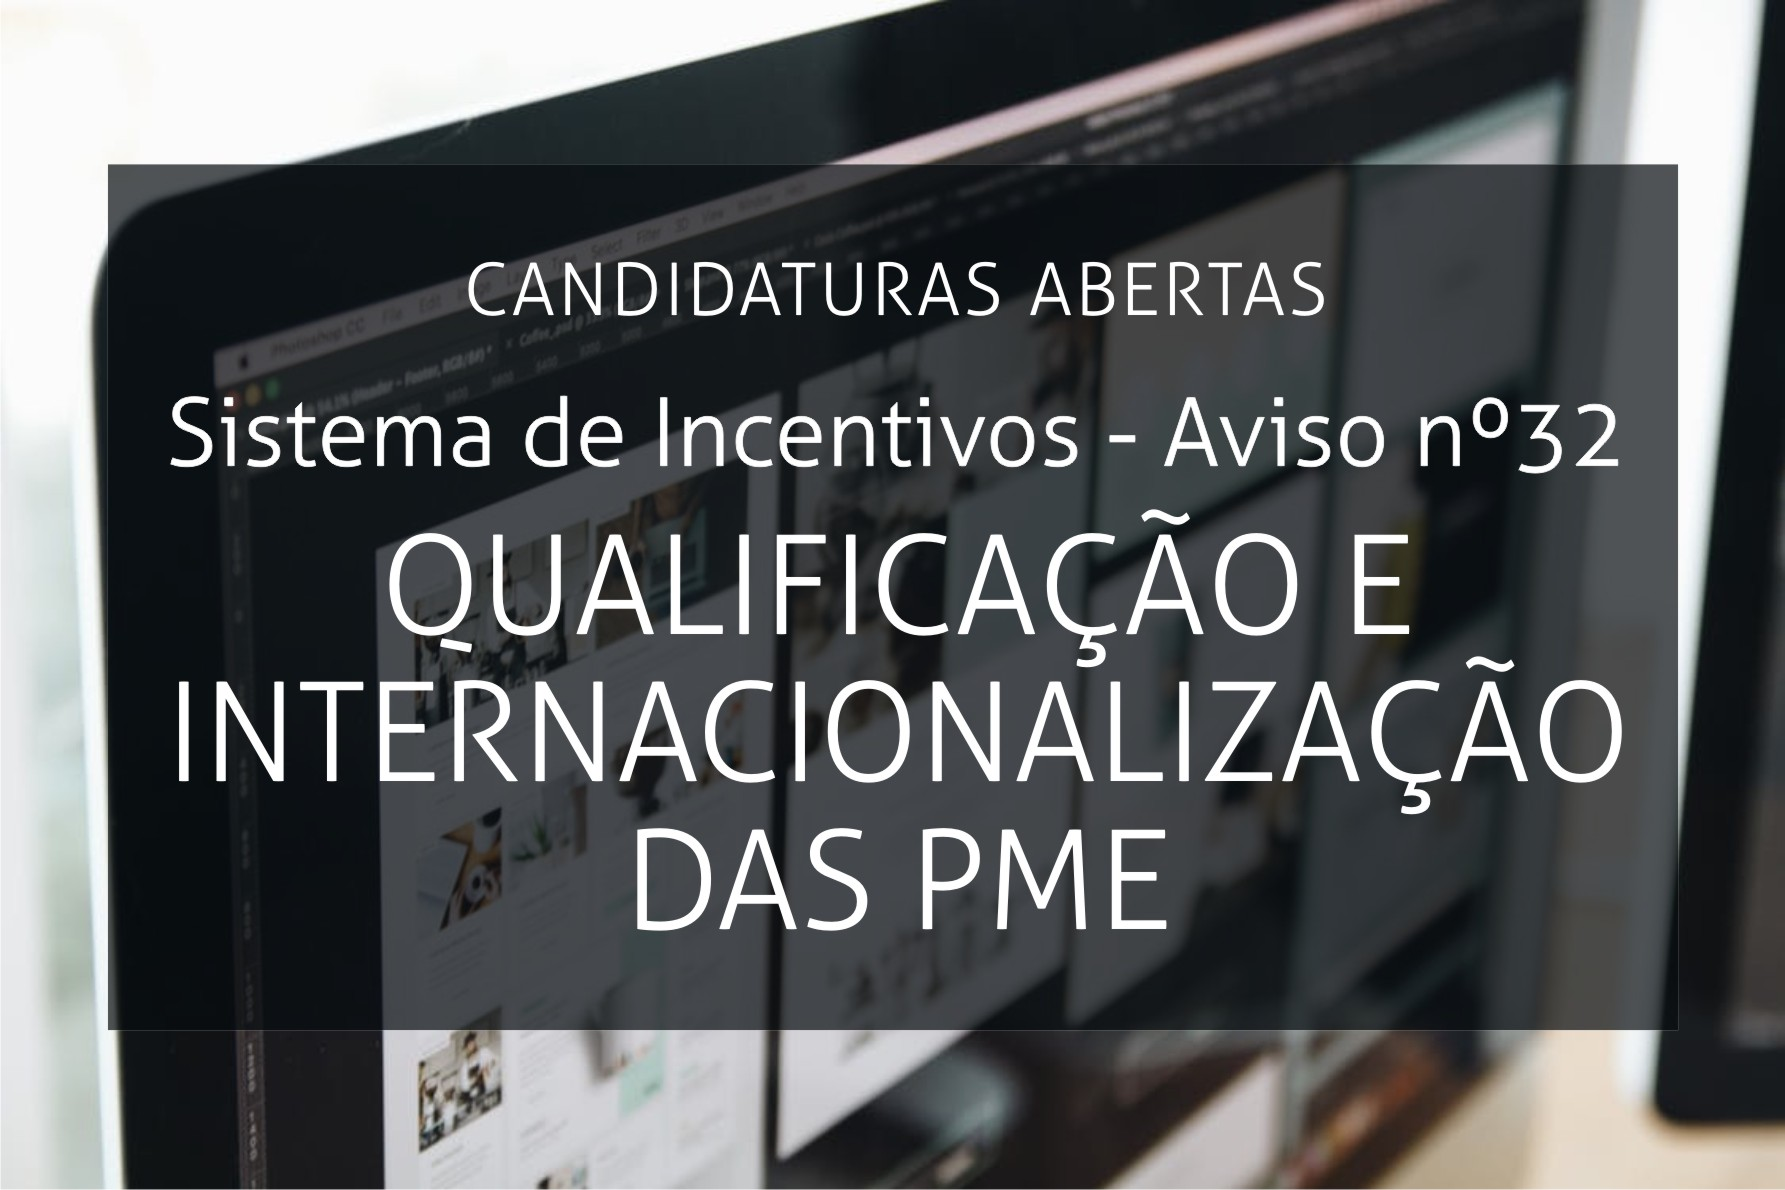 Qualification and Internationalization of SMEs